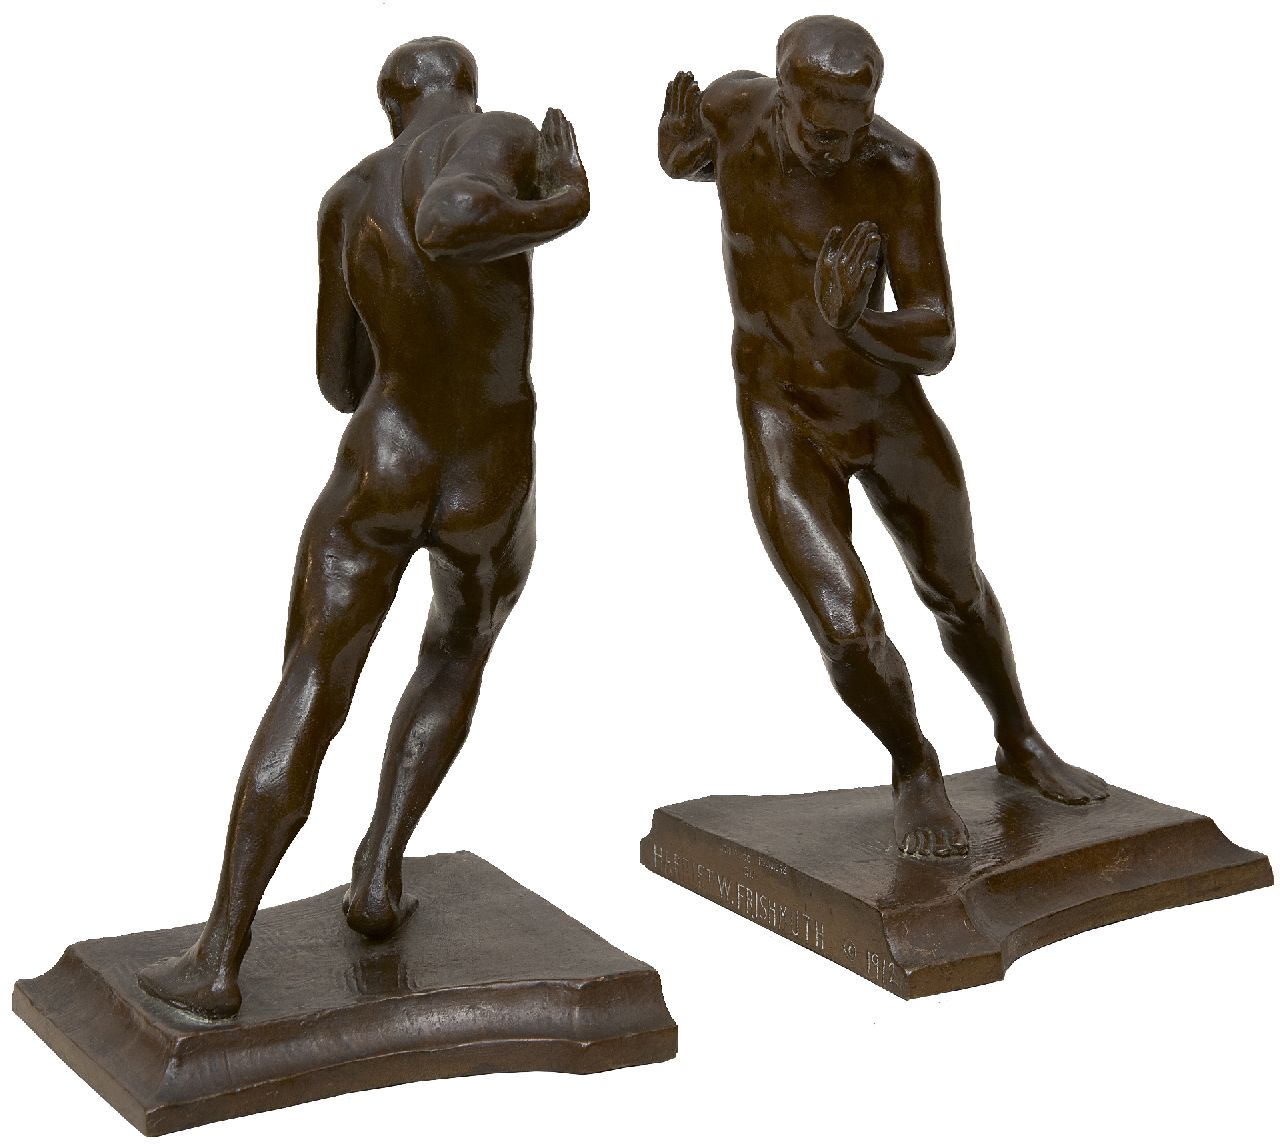 Frishmuth H.W.  | Pushing Men (bookends), bronze with a brown patina, 19.7 x 11.0 cm, signed on lower edge of the base and dated 1912 on the base